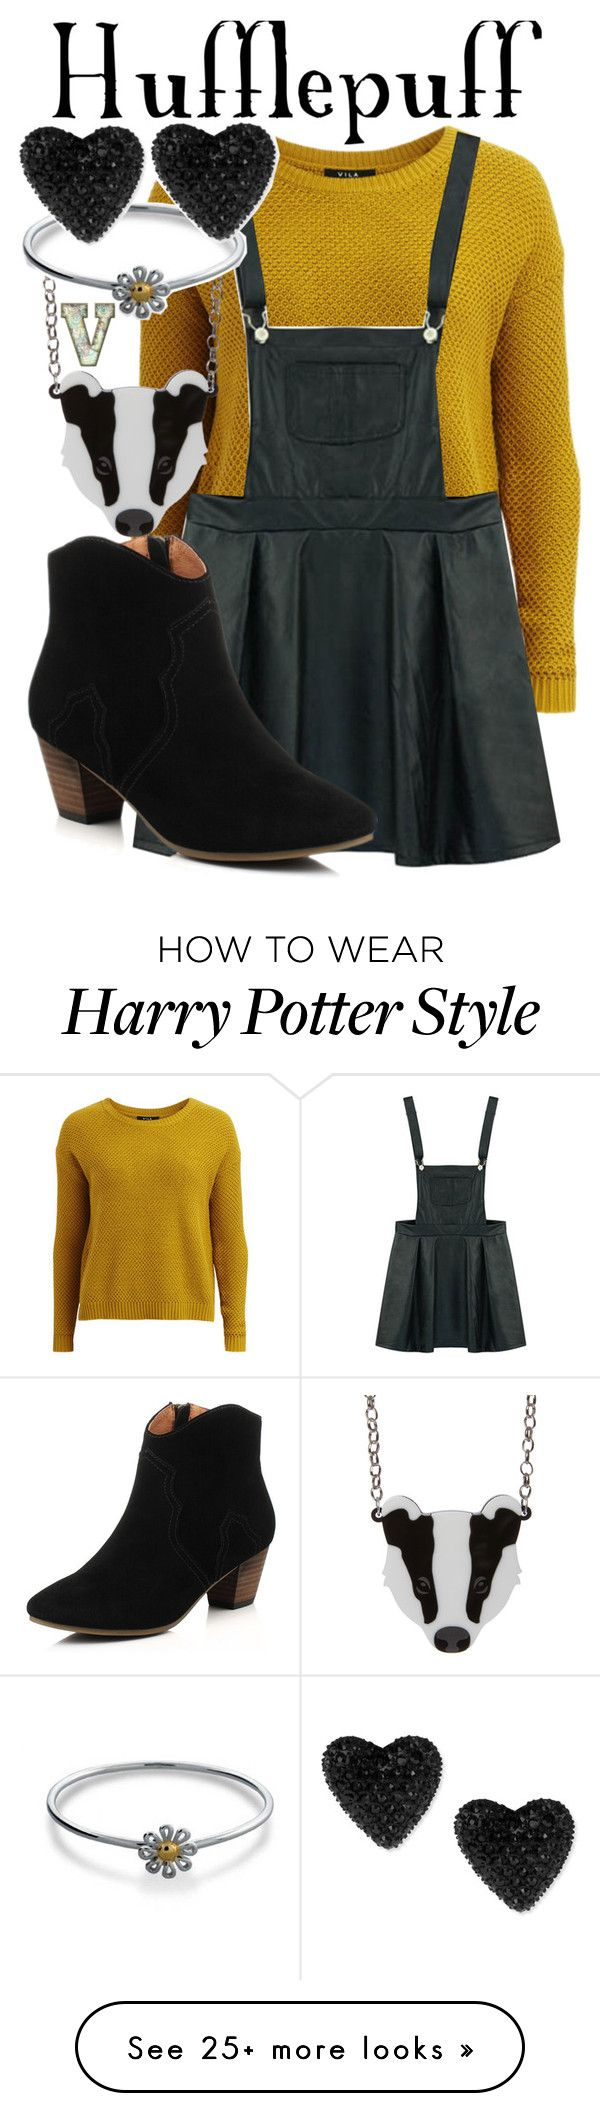 """""""Hufflepuff (Harry Potter)"""" by fabfandoms on Polyvore featuring VILA, Bling Jewelry and Betsey Johnson"""